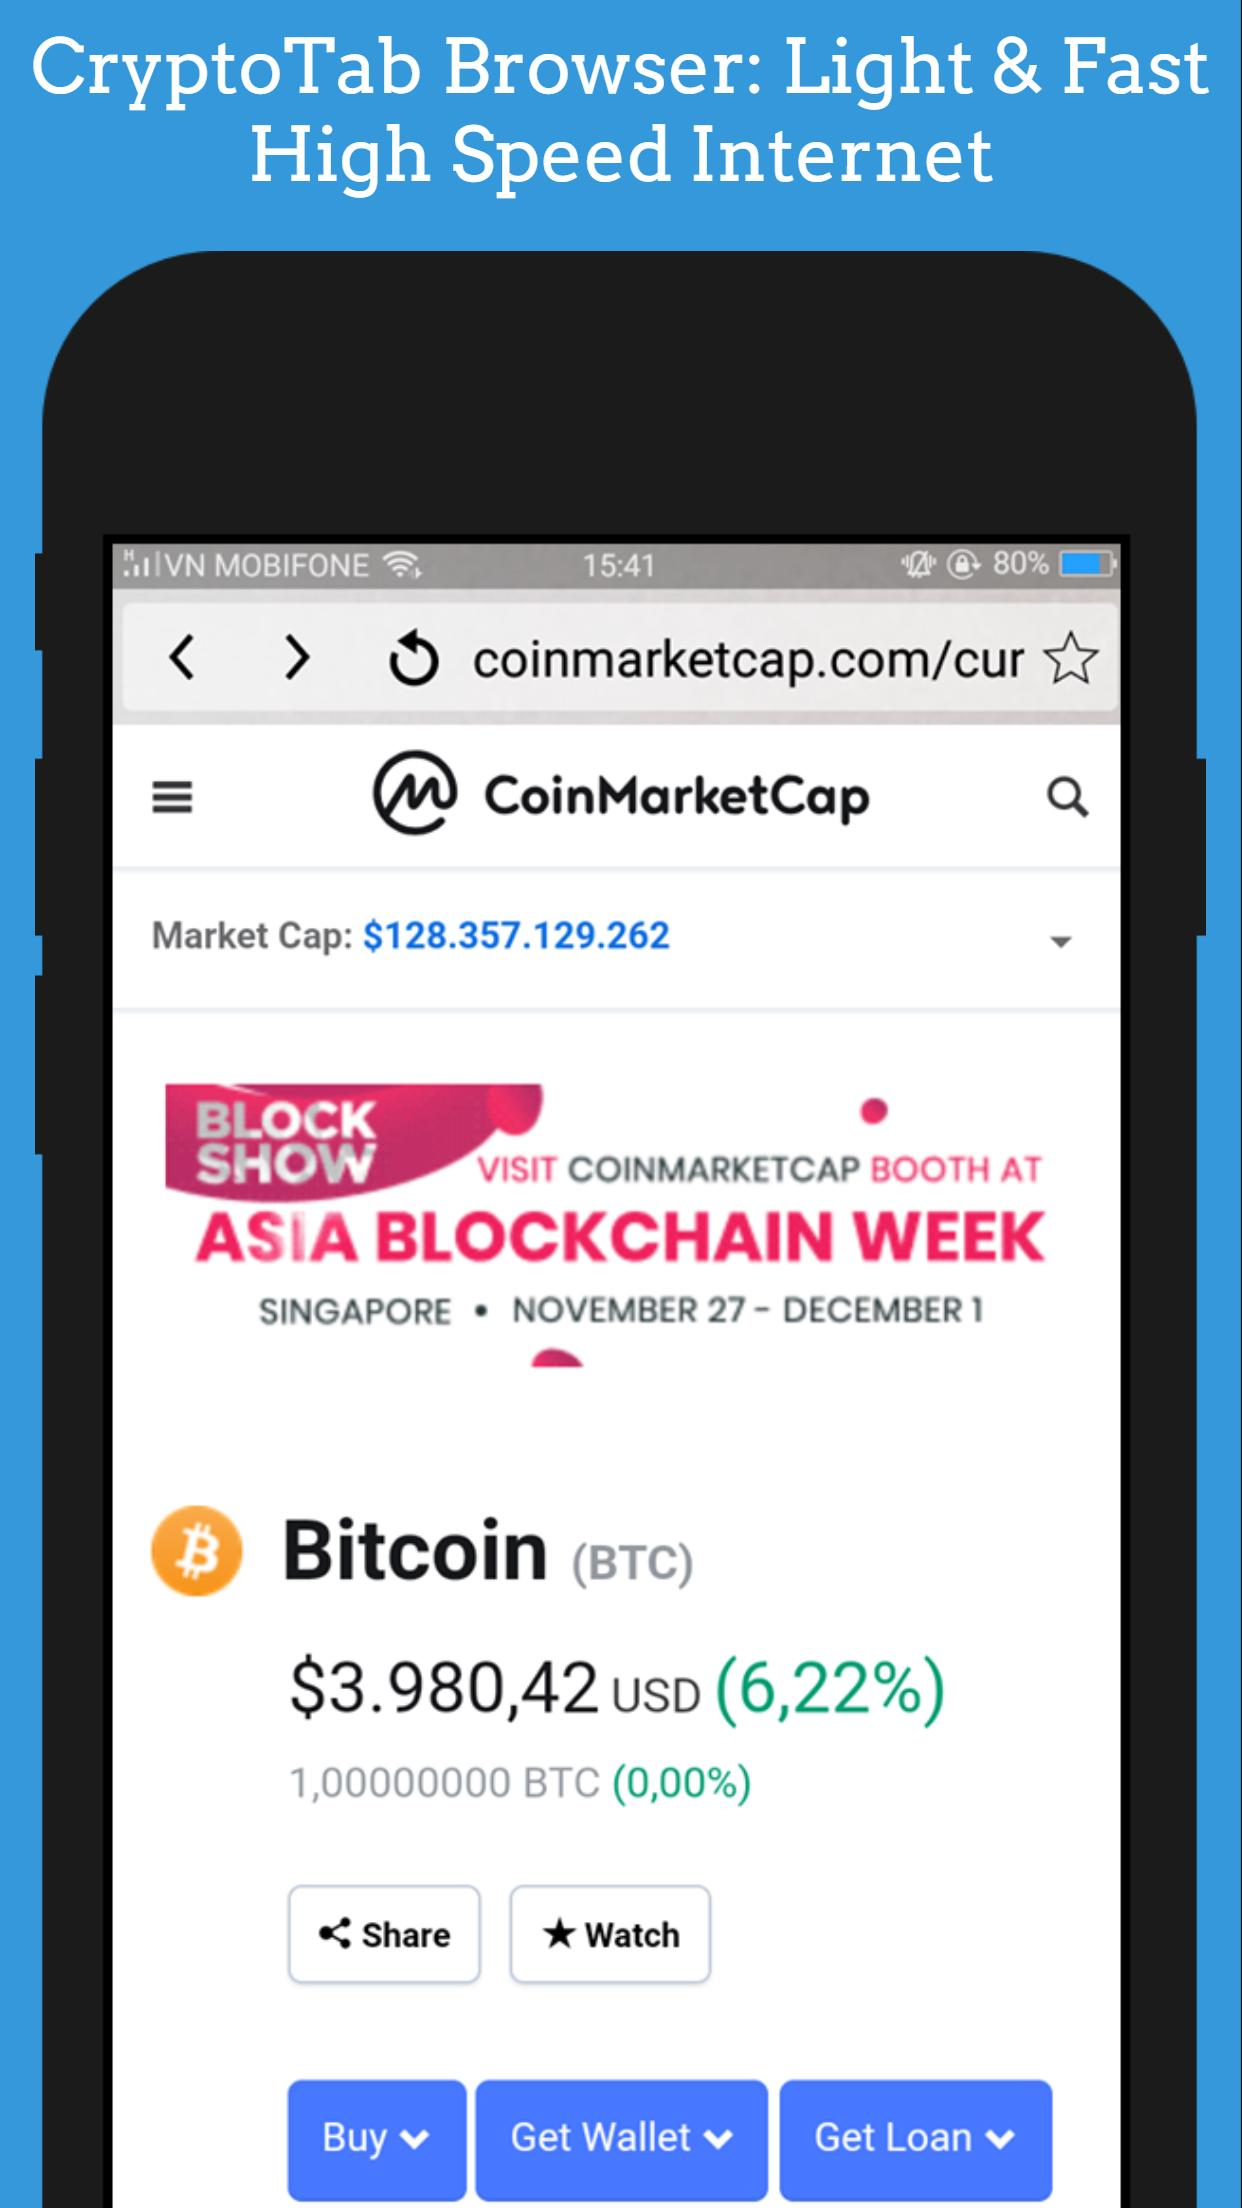 CryptoTab Browser Mini: Light & Fast - For Android for